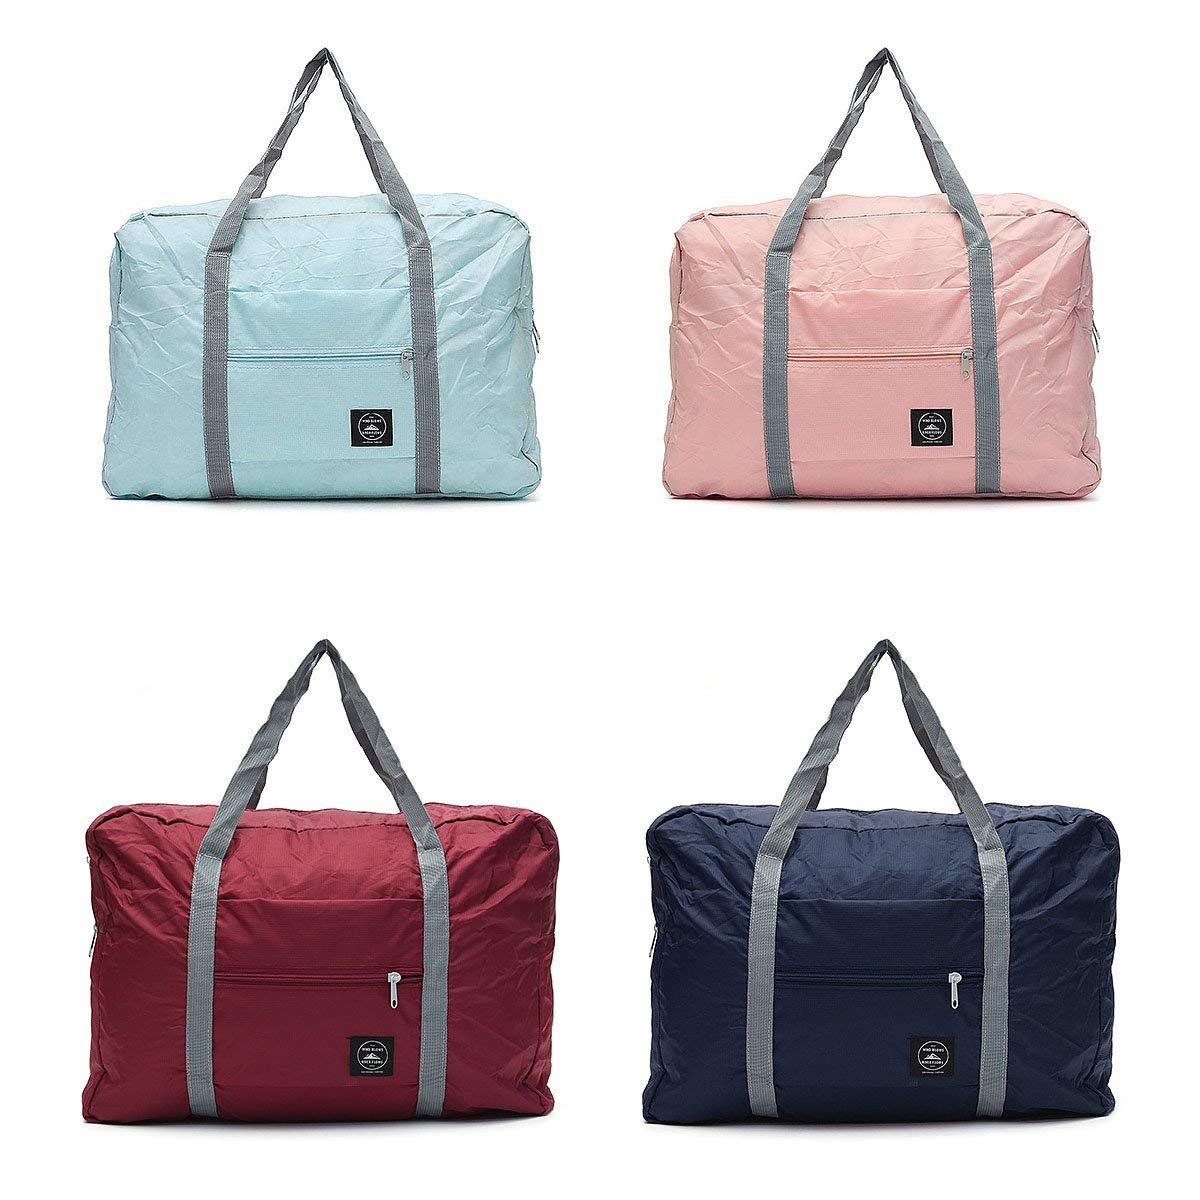 dDanke Travel Foldable Duffel Bag for Women & Men, Lightweight Travel Luggage Bag Luggage Duffel 4 Color Choices for Sports, Gym, Vacation